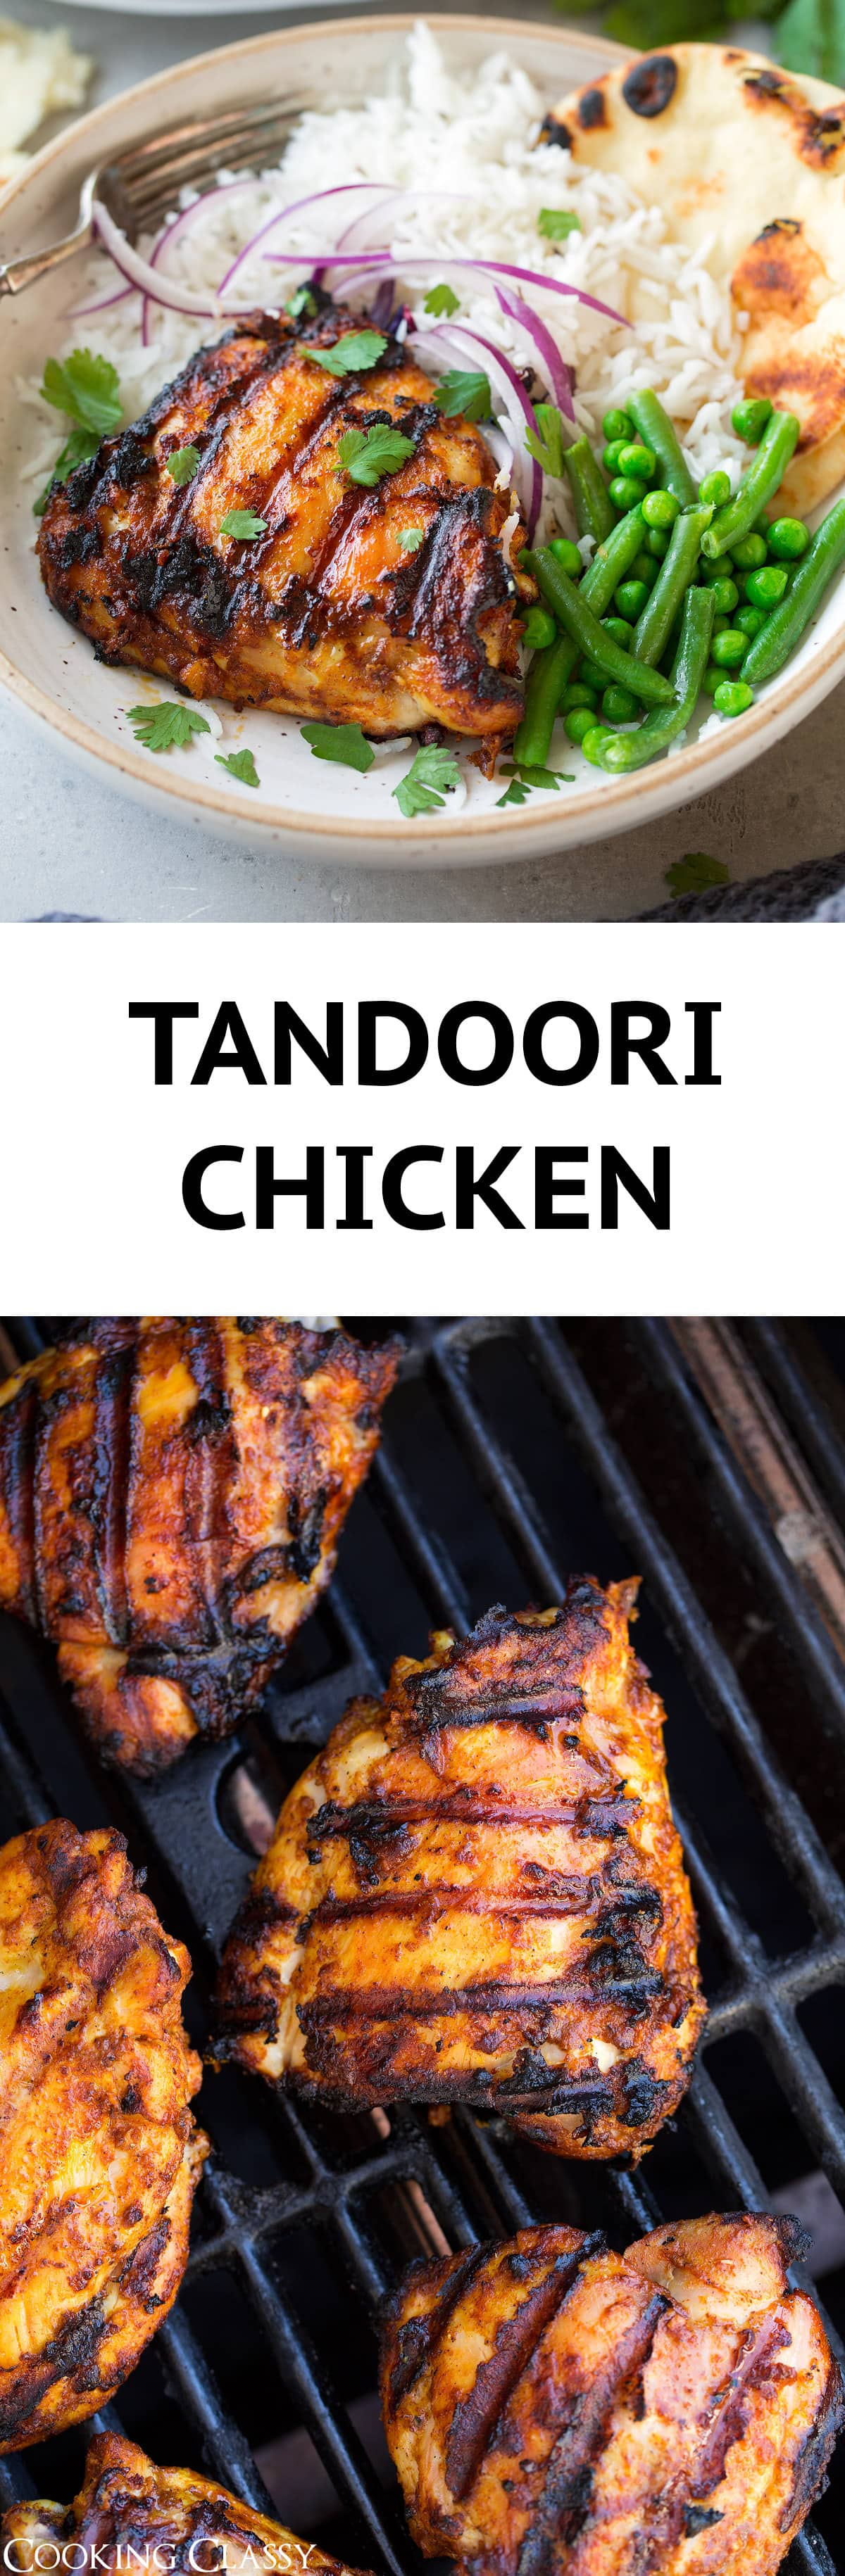 Tandoori Chicken -  just as good as what you'd get at an Indian restaurant and it's so easy to make! Chicken thighs are soaked in a creamy, well spiced, yogurt based marinade and then cooked on the grill to get that traditional char. #chicken #recipe #tandoorichicken #indianfood